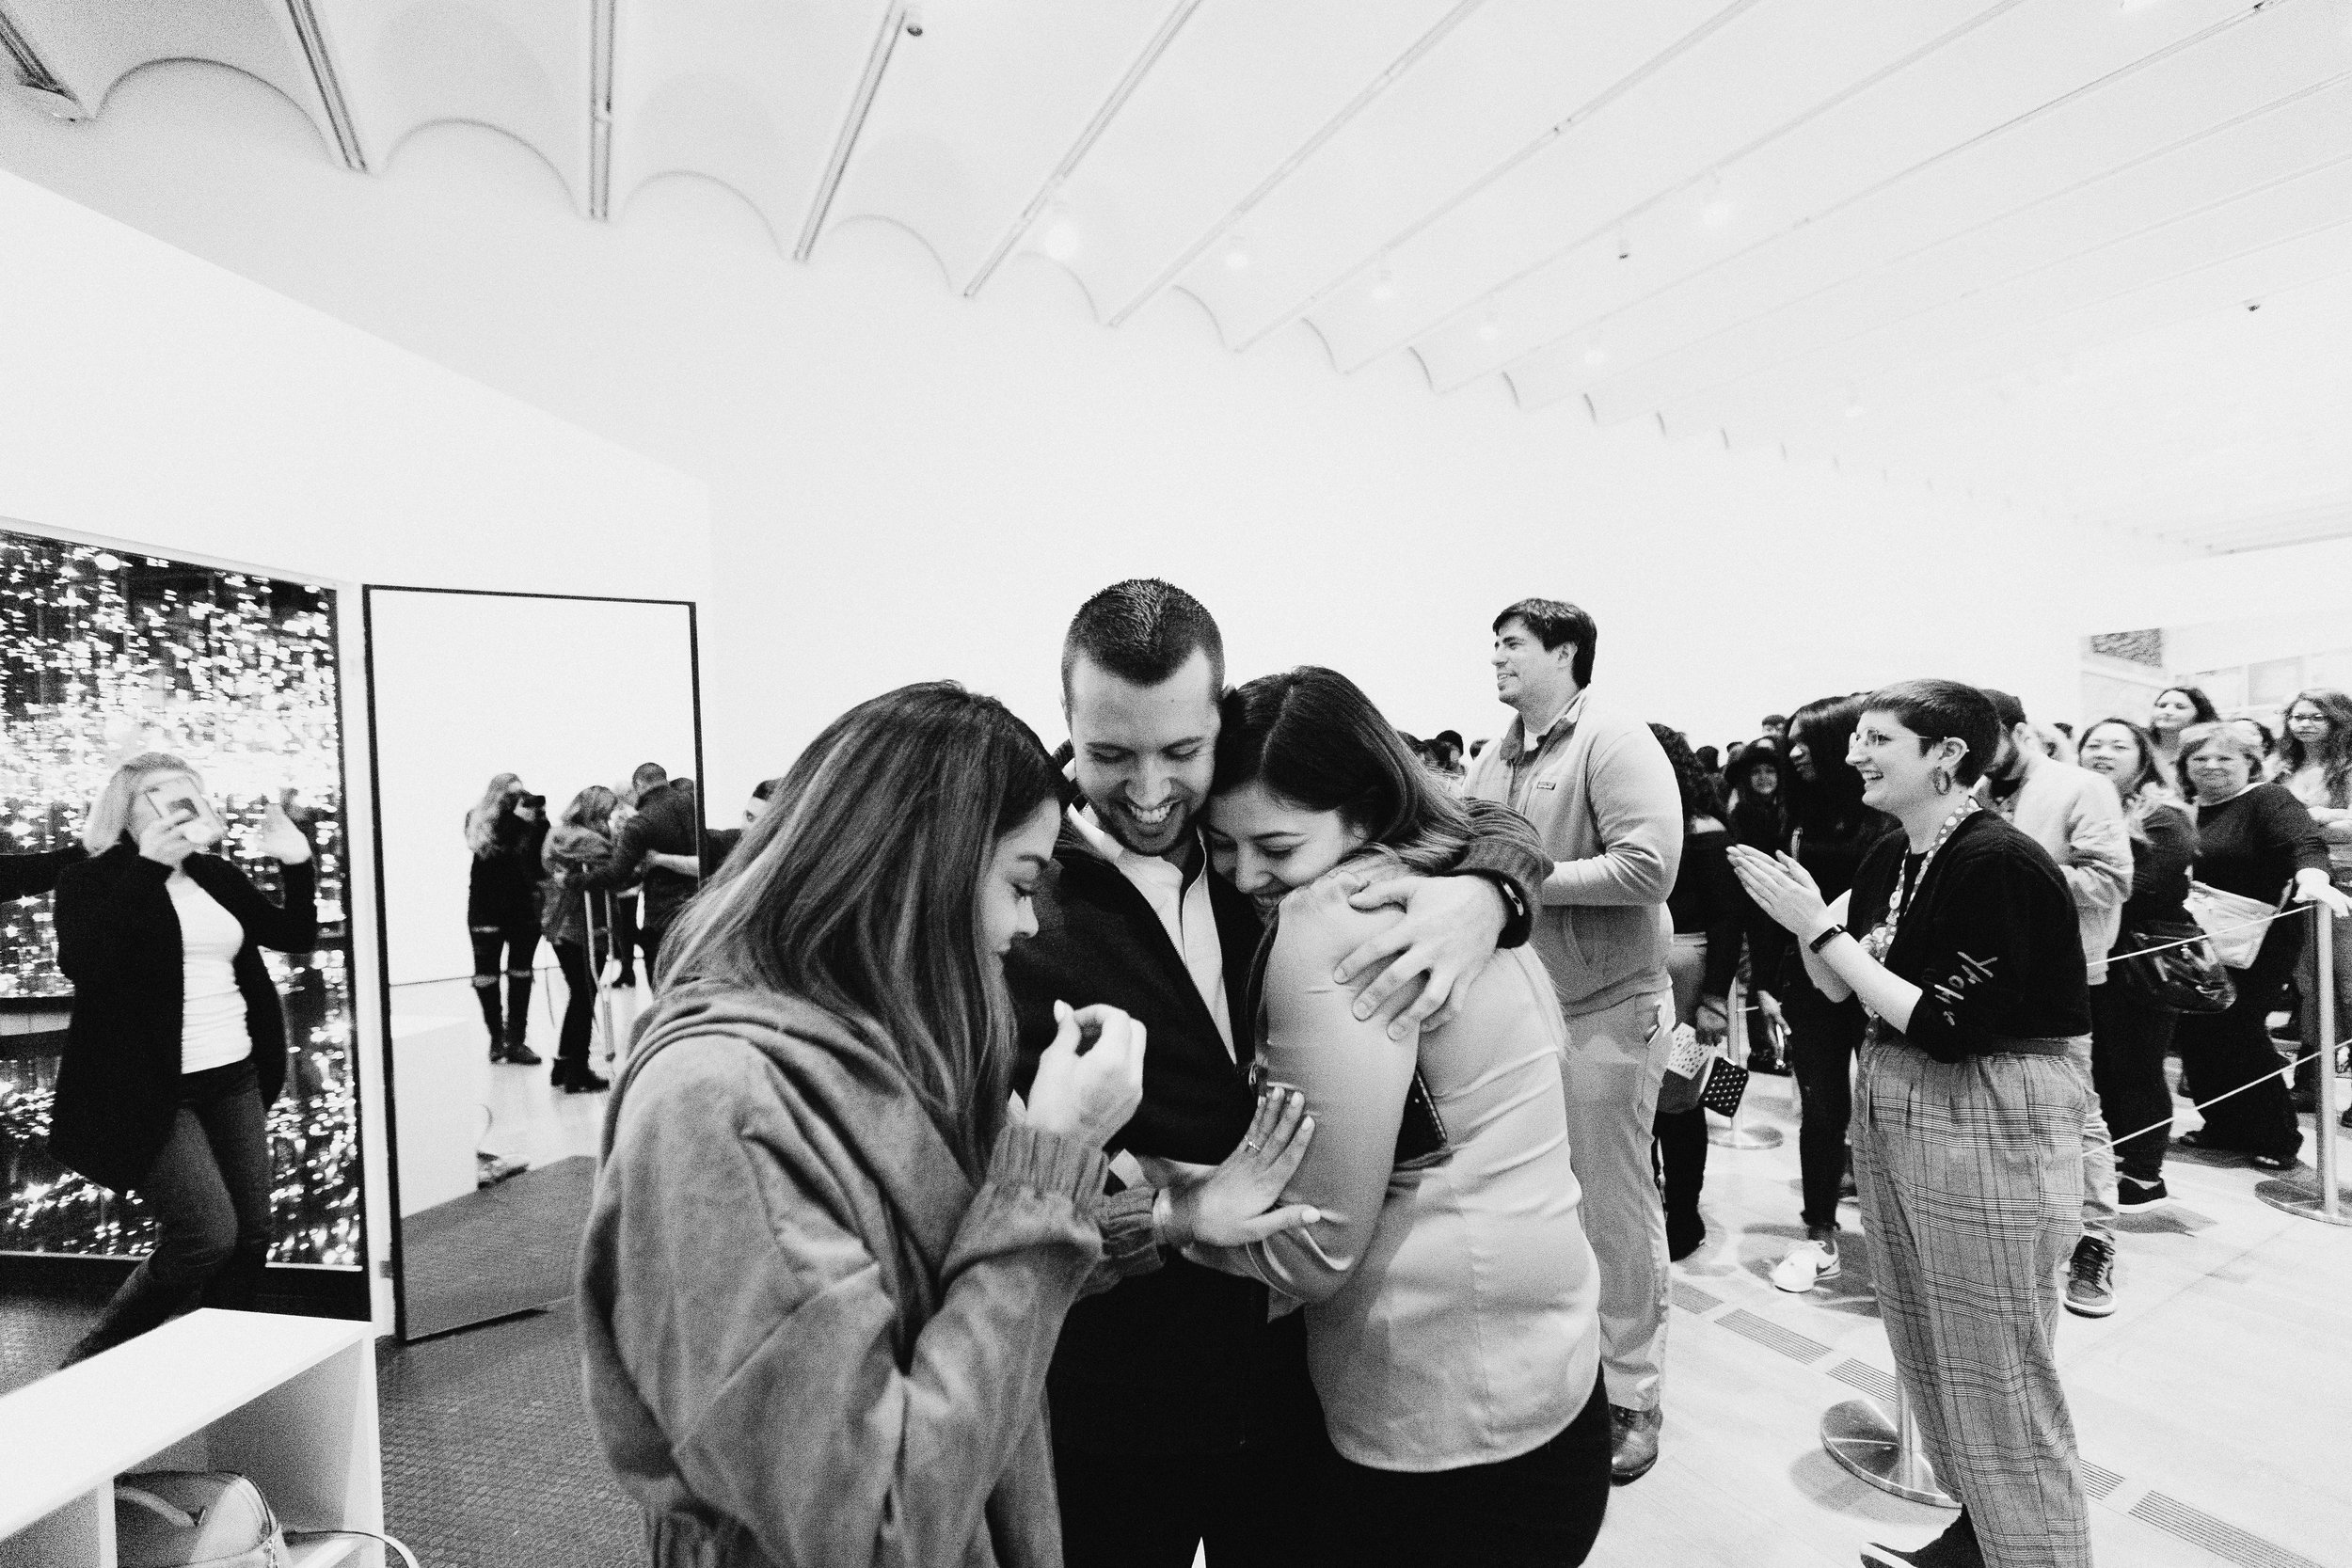 high_museum_infinity_mirrors_Yayoi_Kusama_proposal_amazing_atlanta_real_couple_engagement_ideas_epic_1049.jpg